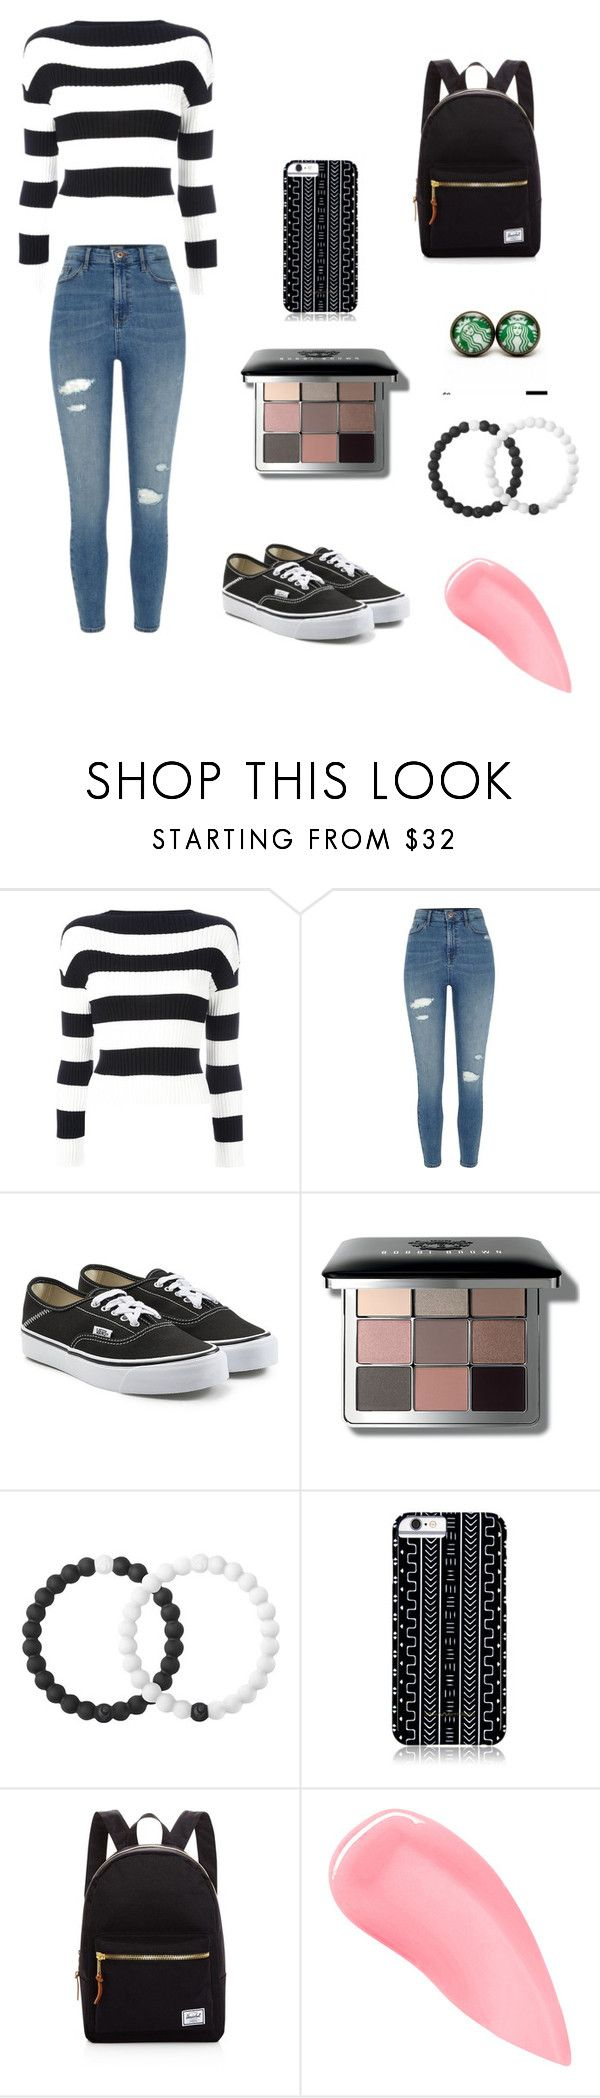 """Winter break"" by queenstephy88 on Polyvore featuring Boutique Moschino, River Island, Vans, Bobbi Brown Cosmetics, Lokai, Savannah Hayes, Herschel Supply Co., Kevyn Aucoin and clear"